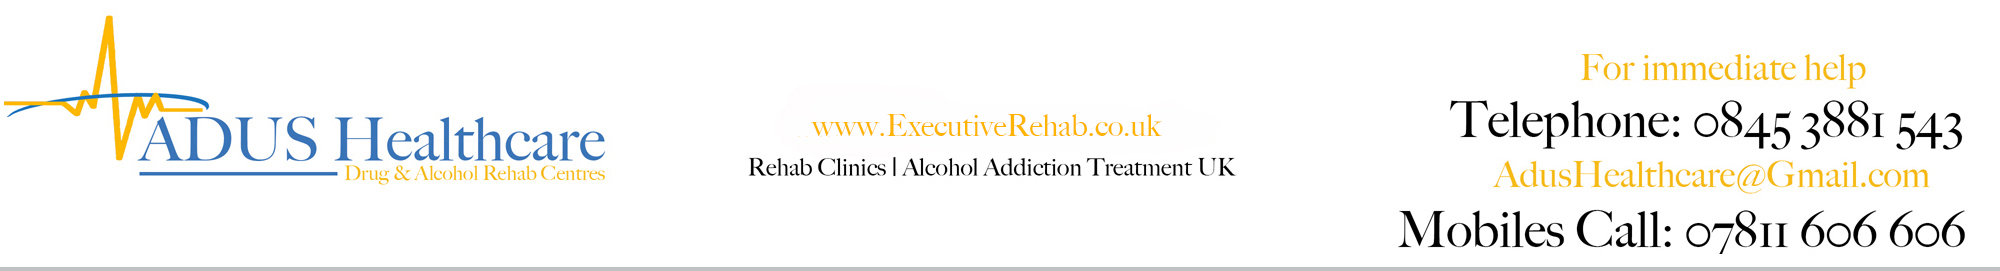 Executive Rehab | The top rehab drug & alcohol rehab centres